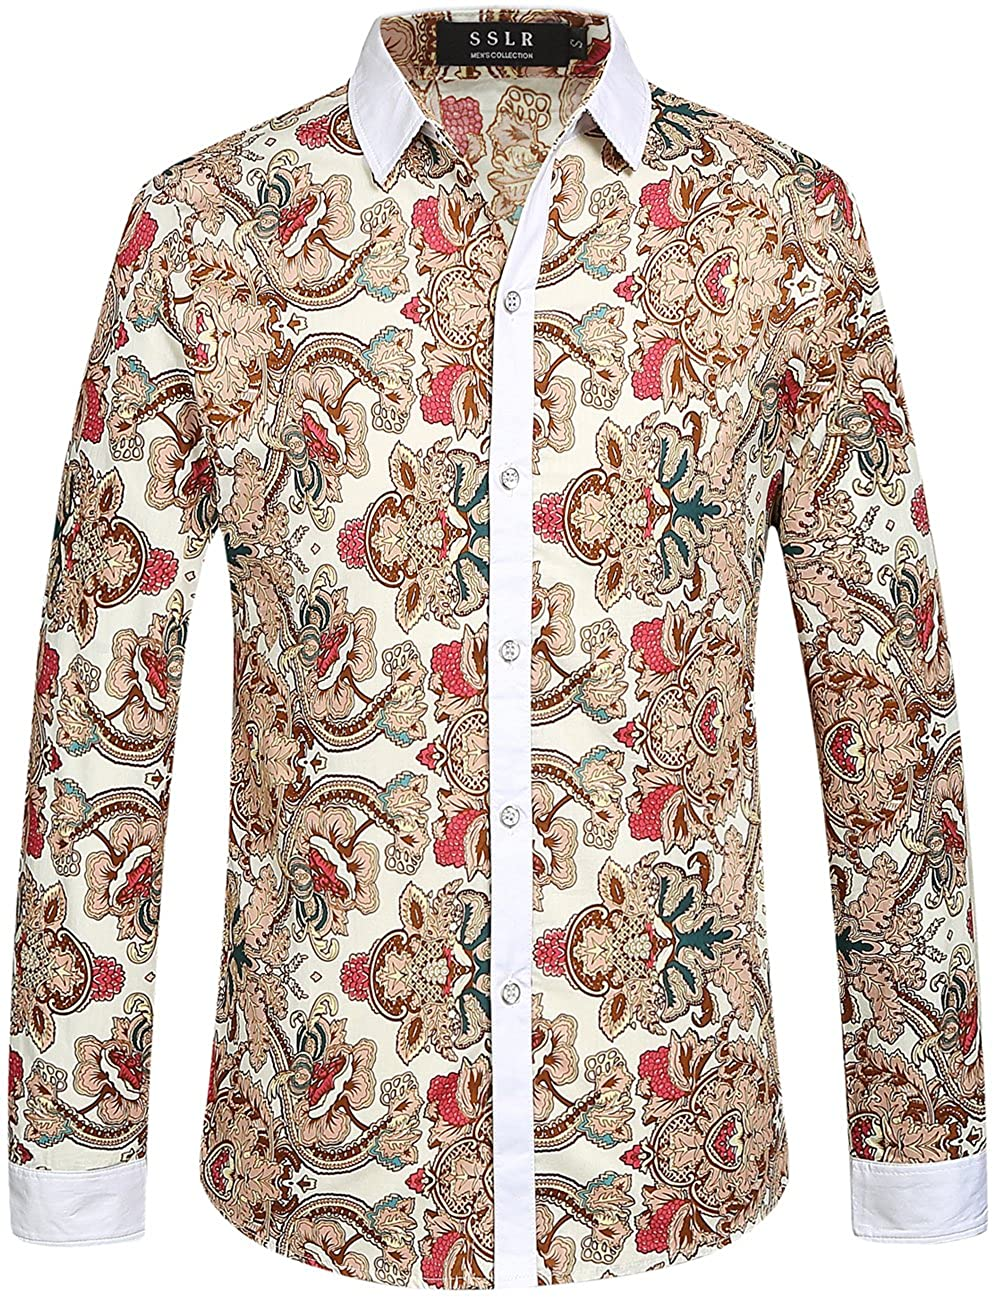 60s , 70s Hippie Clothes for Men SSLR Mens Vintage Printed Button Down Casual Long Sleeve Shirt $26.00 AT vintagedancer.com